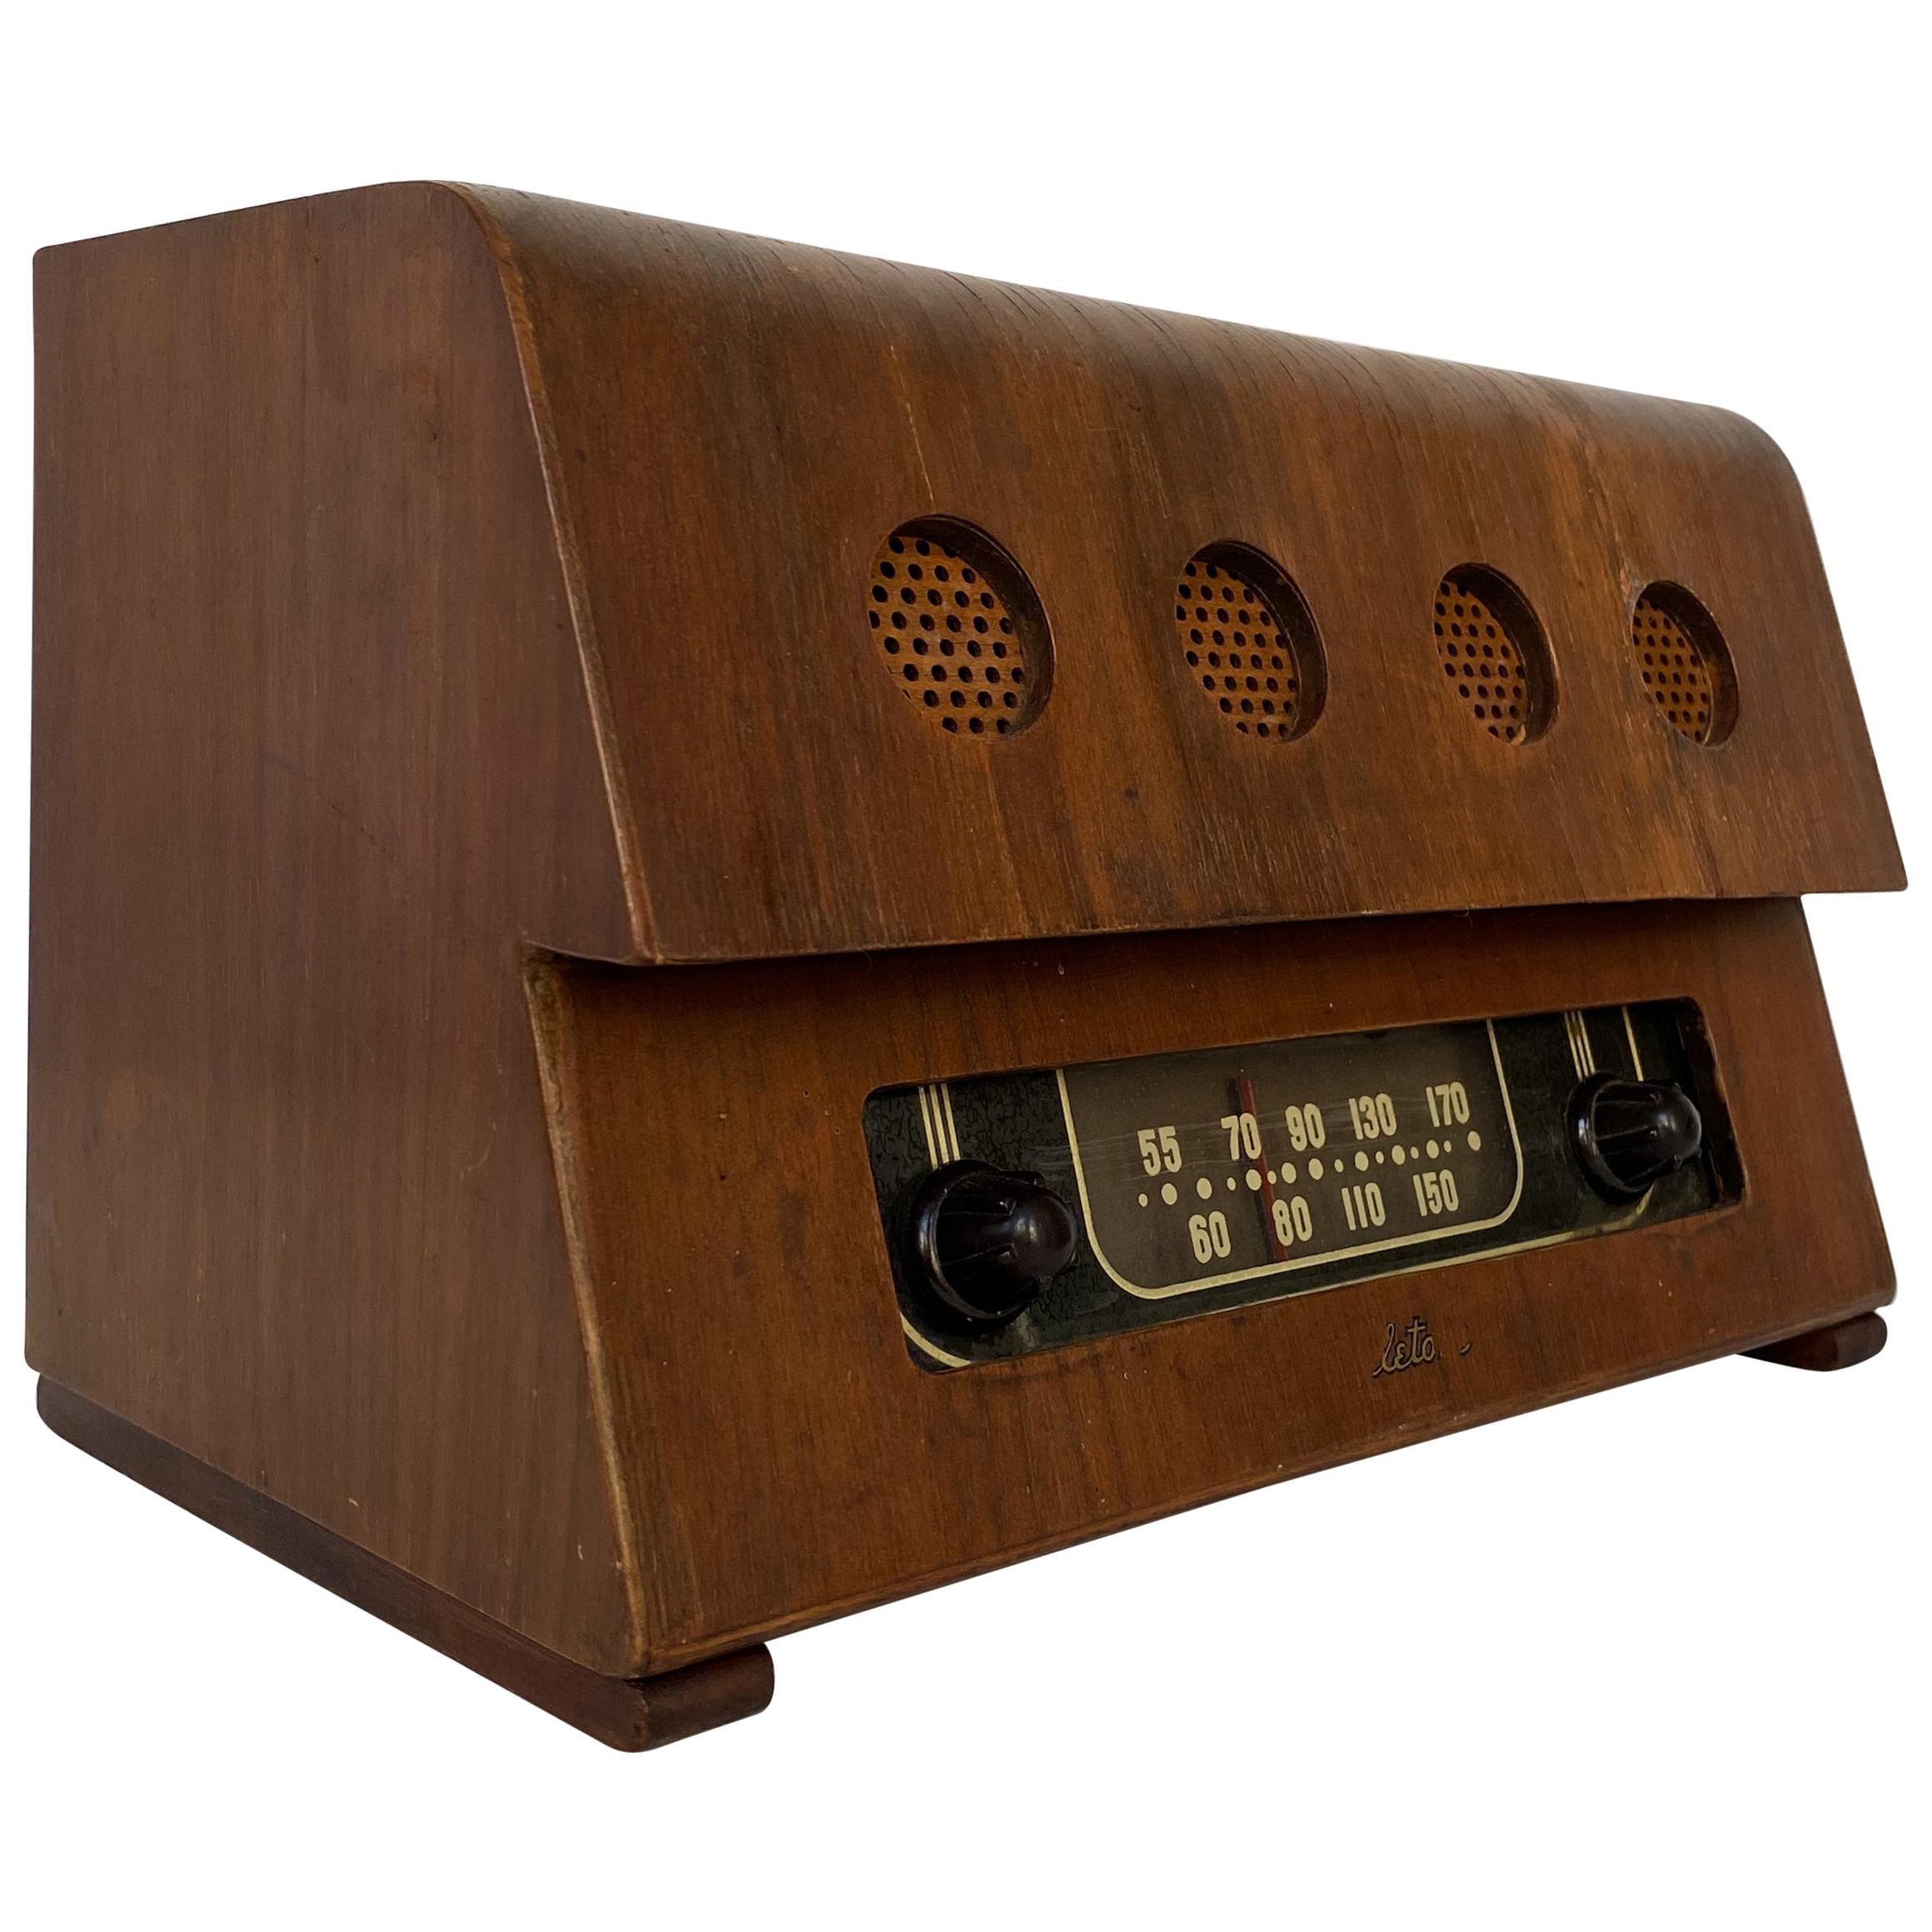 Charles and Ray Eames Molded Plywood Radio